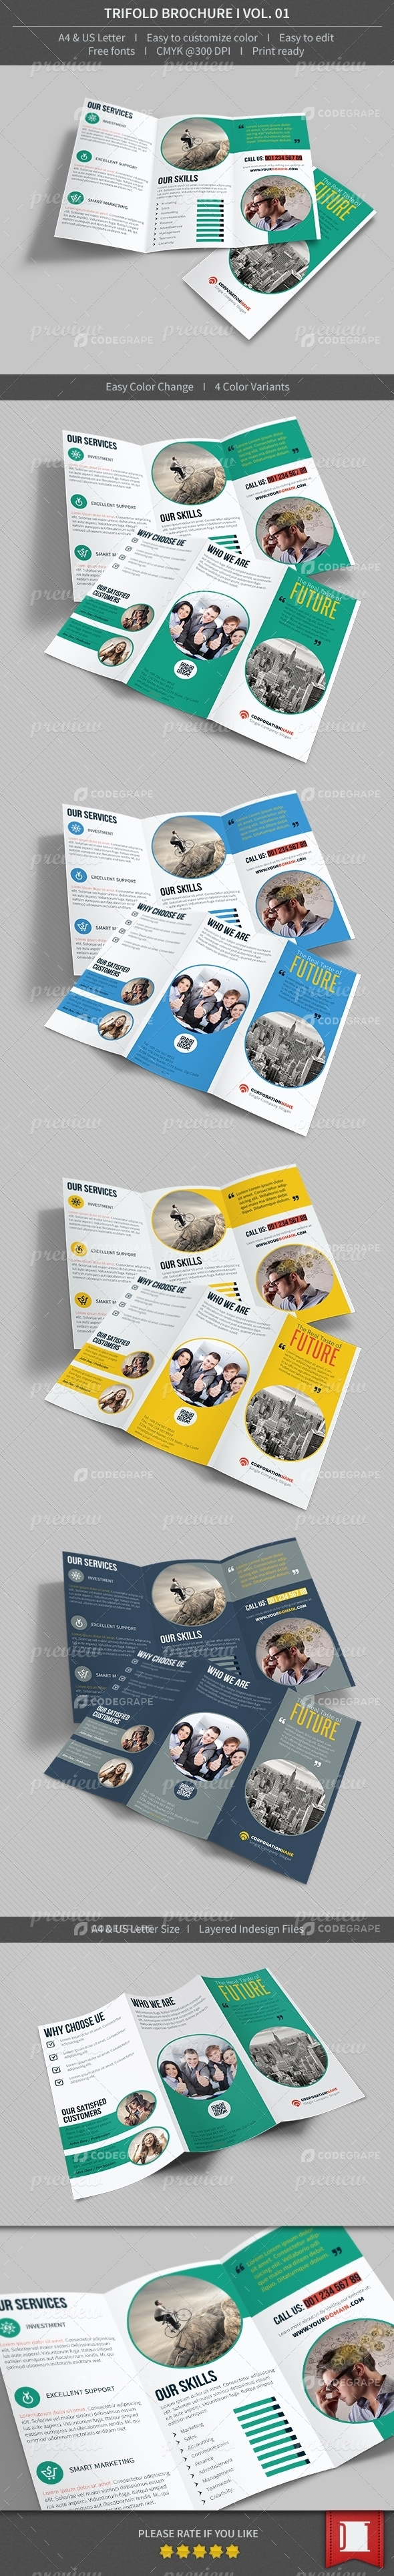 Trifold Brochure - Volume 01